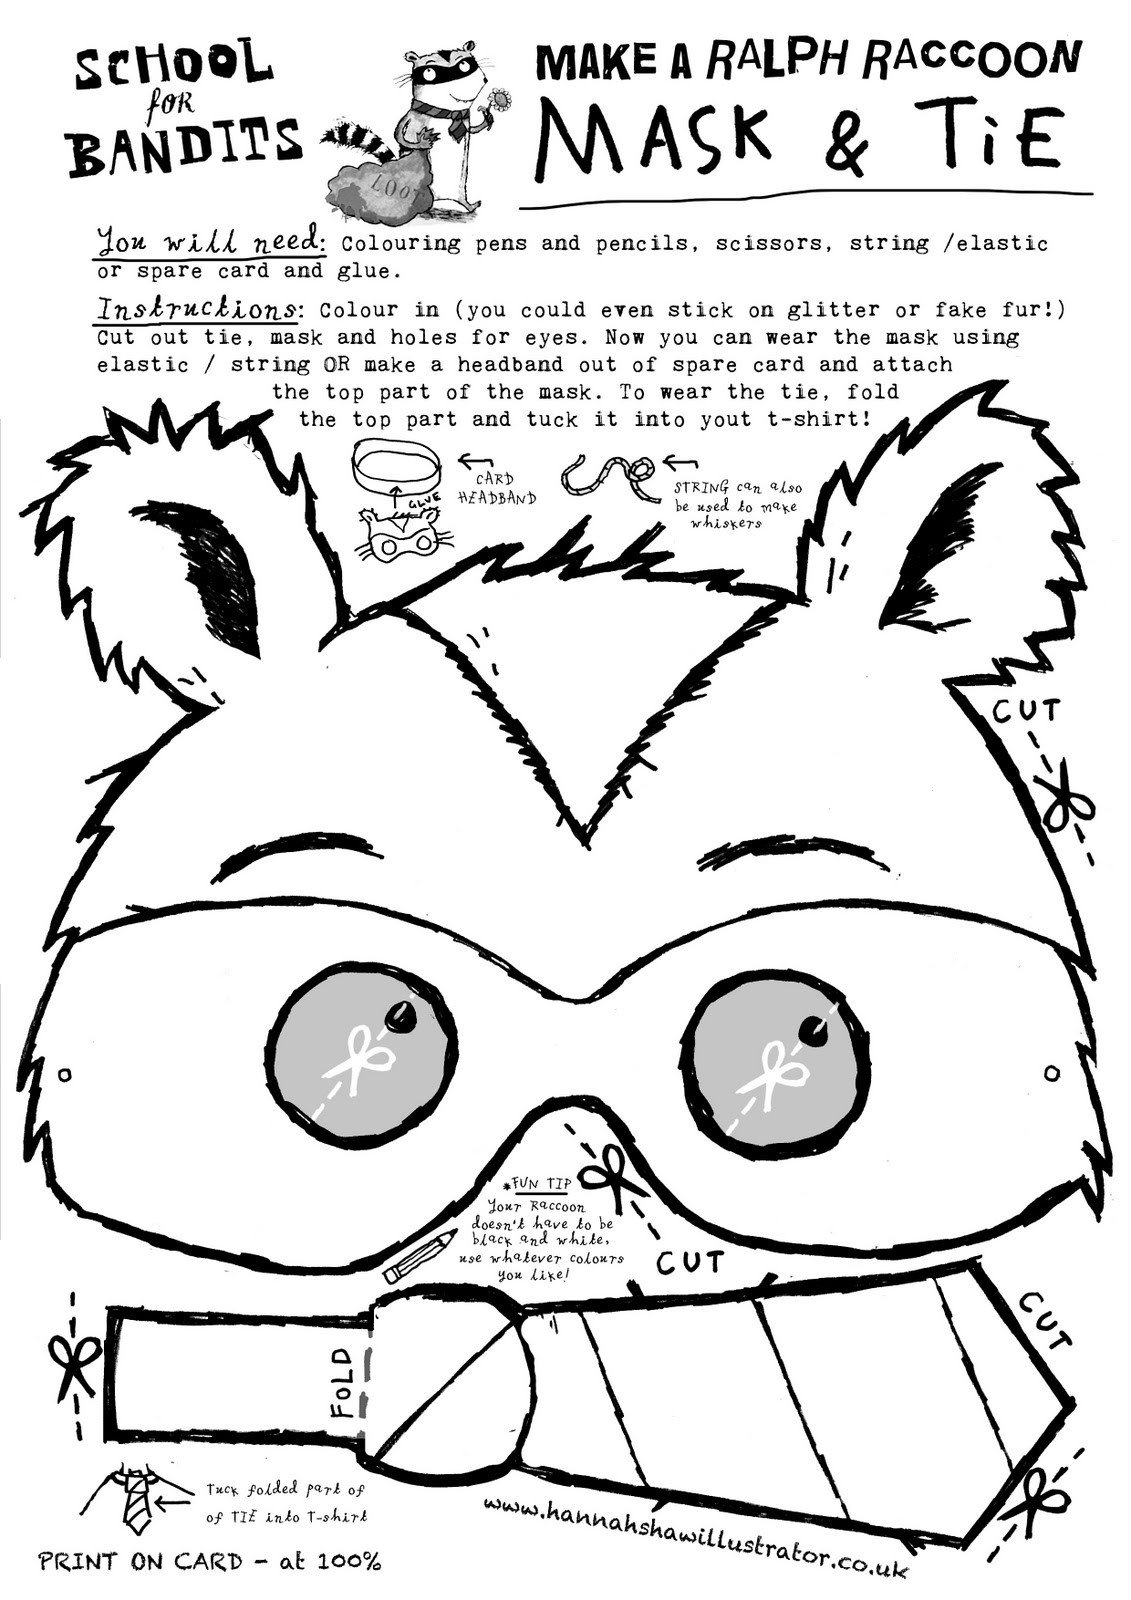 Raccoon Mask Printable Membfounsorag Raccoon Mask Template